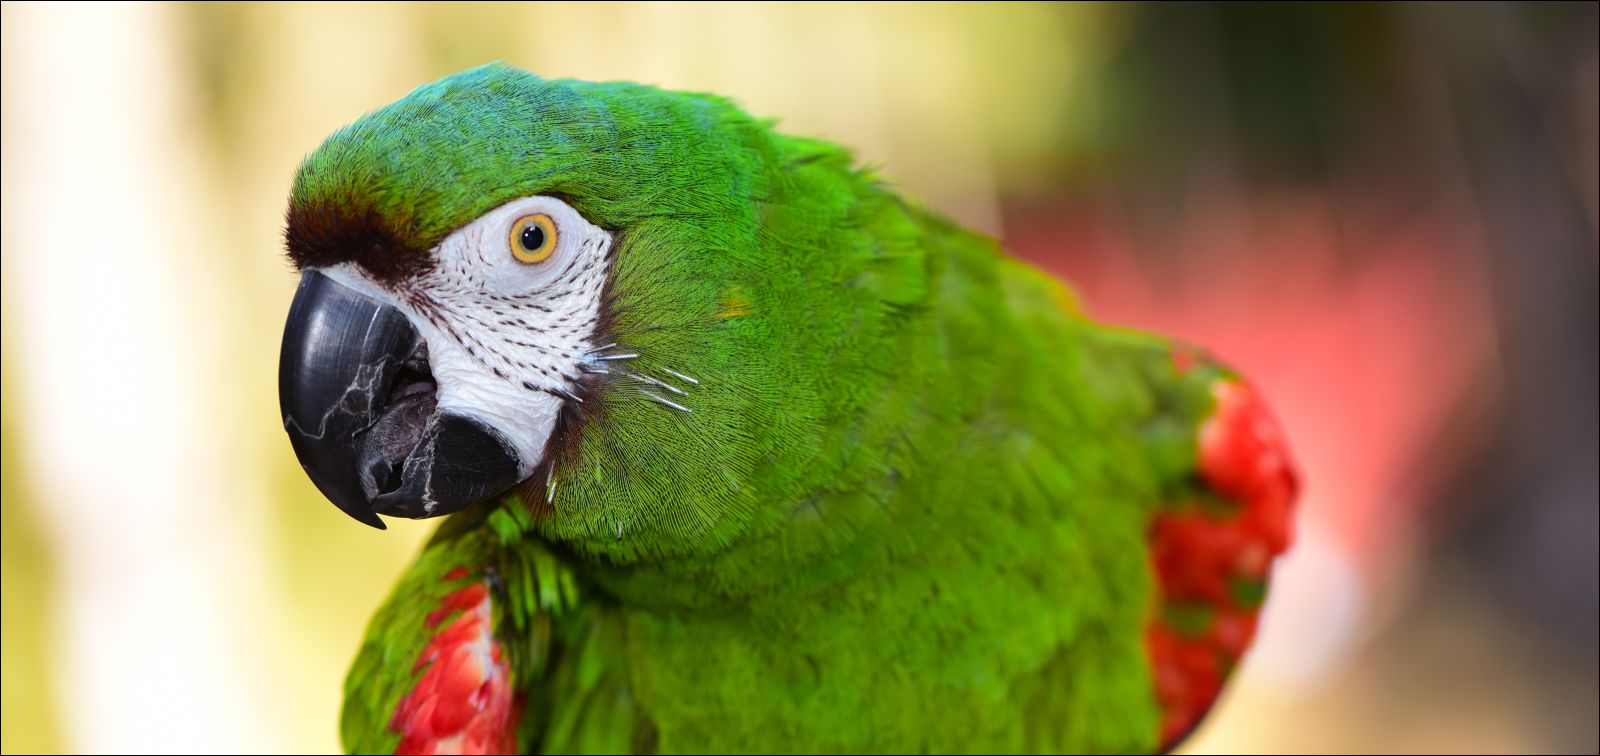 Severe Macaw parrot